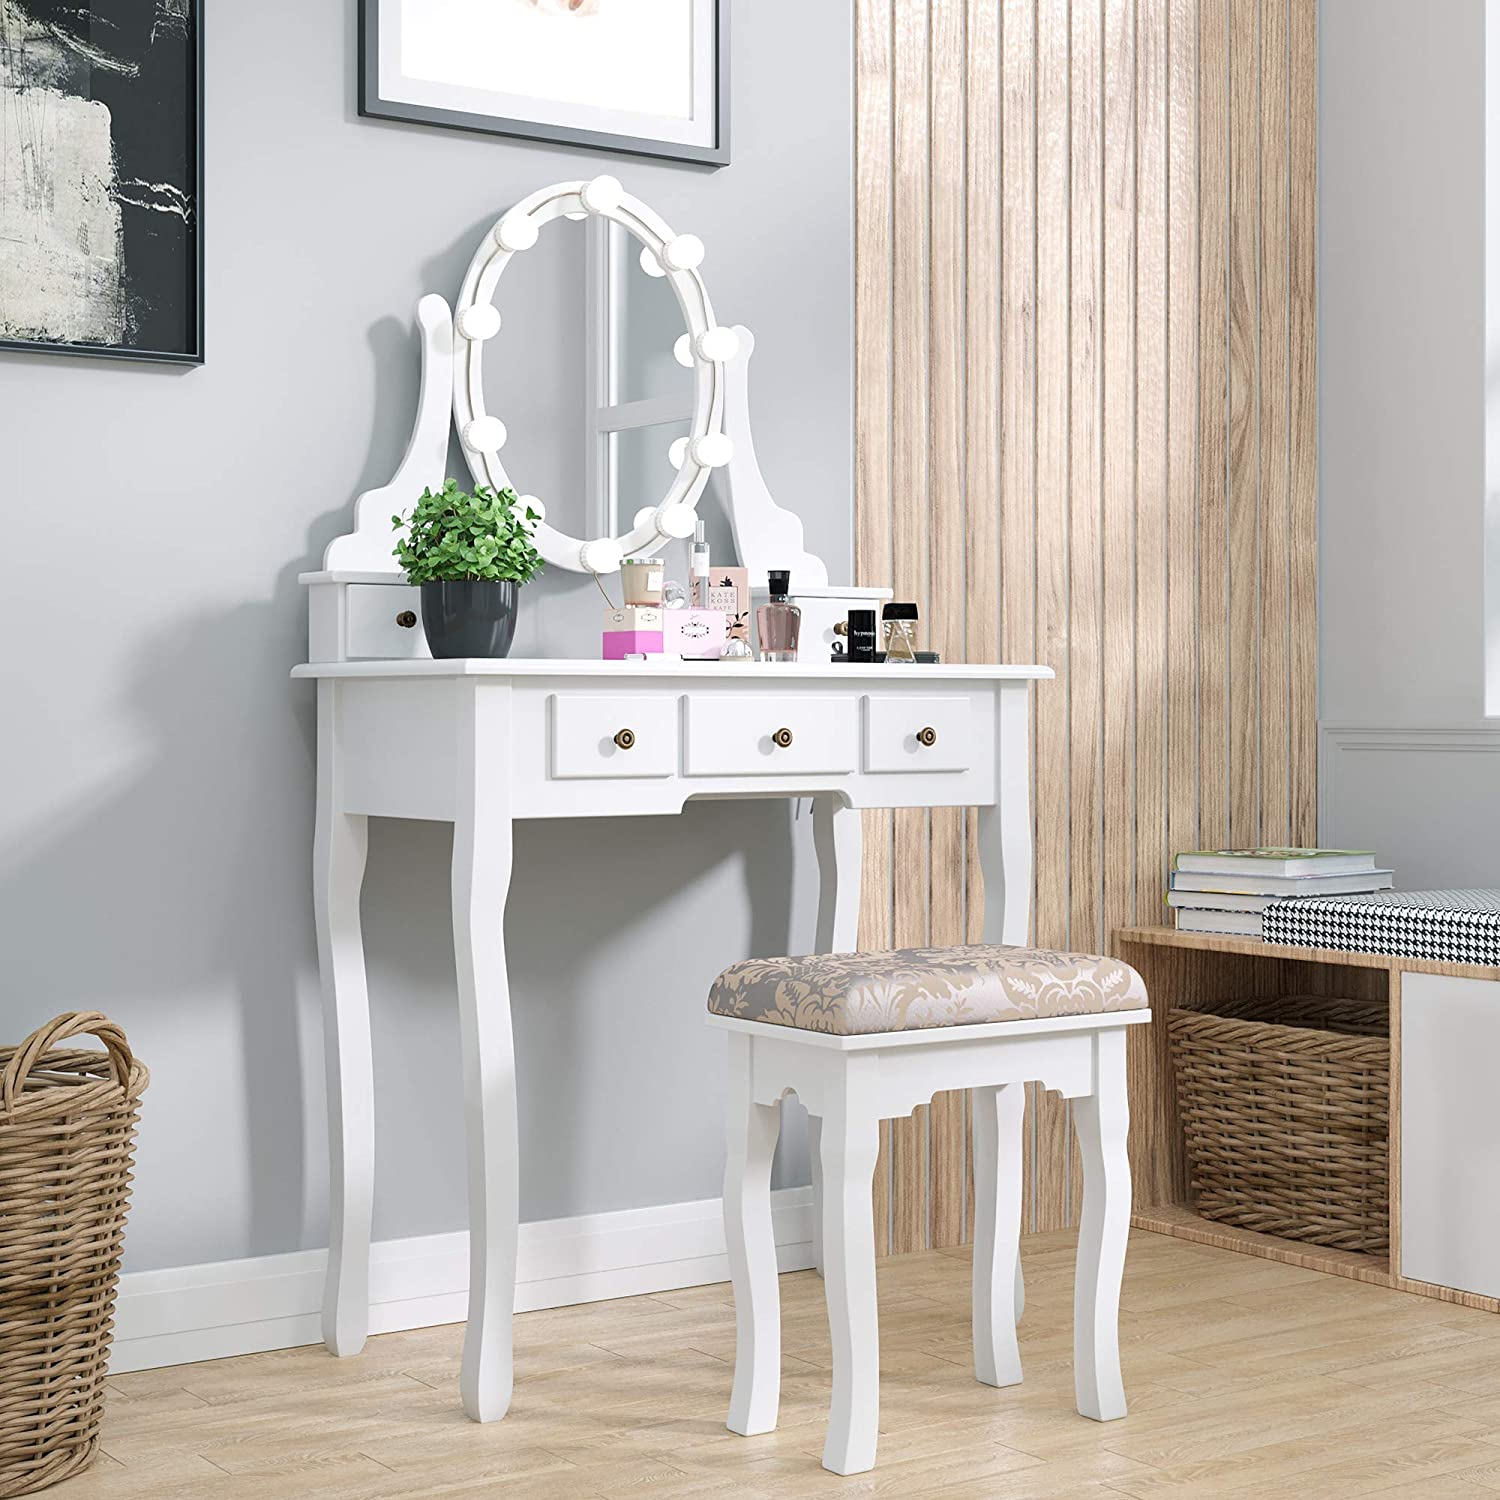 JAXPETY 5-Drawers Classic Vanity Table Set w/Oval Mirror and Cushioned Stool, Wooden Makeup Dressing Table with Adjustable Color Lights Kit Bedroom, White